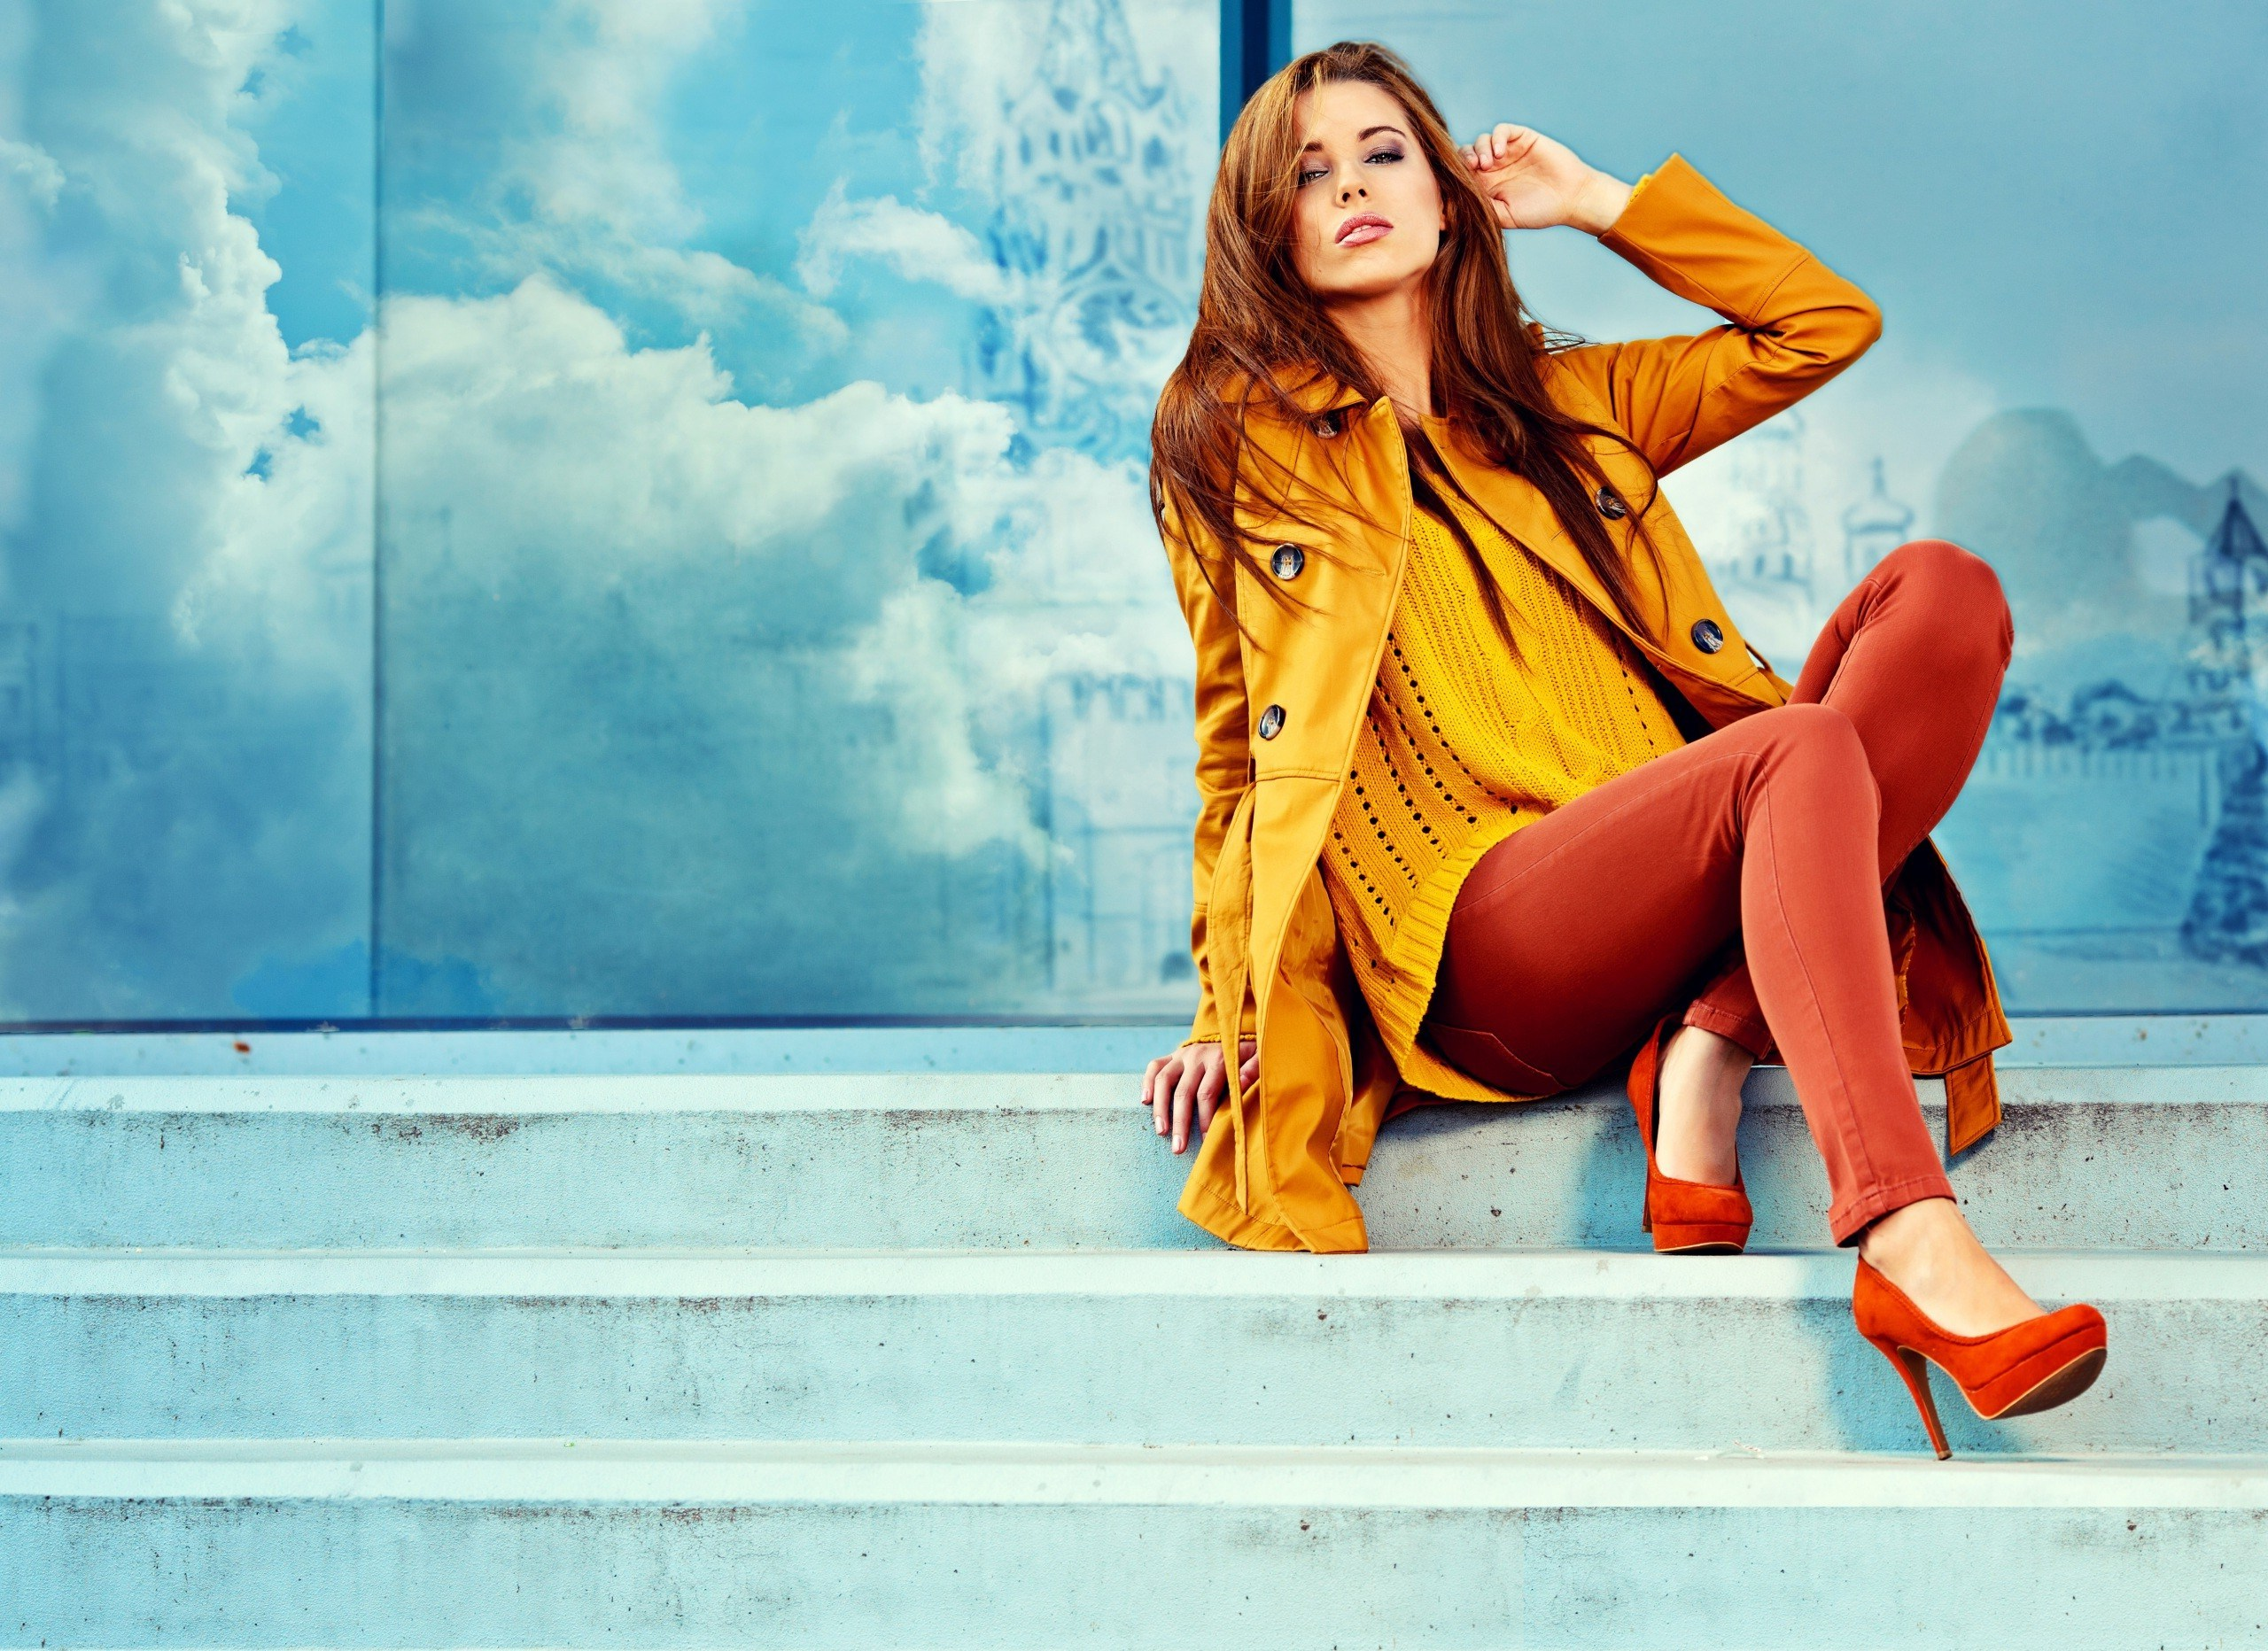 Brown Hair Stylish Girl HD Wallpapers   Large HD Wallpapers 2560x1864